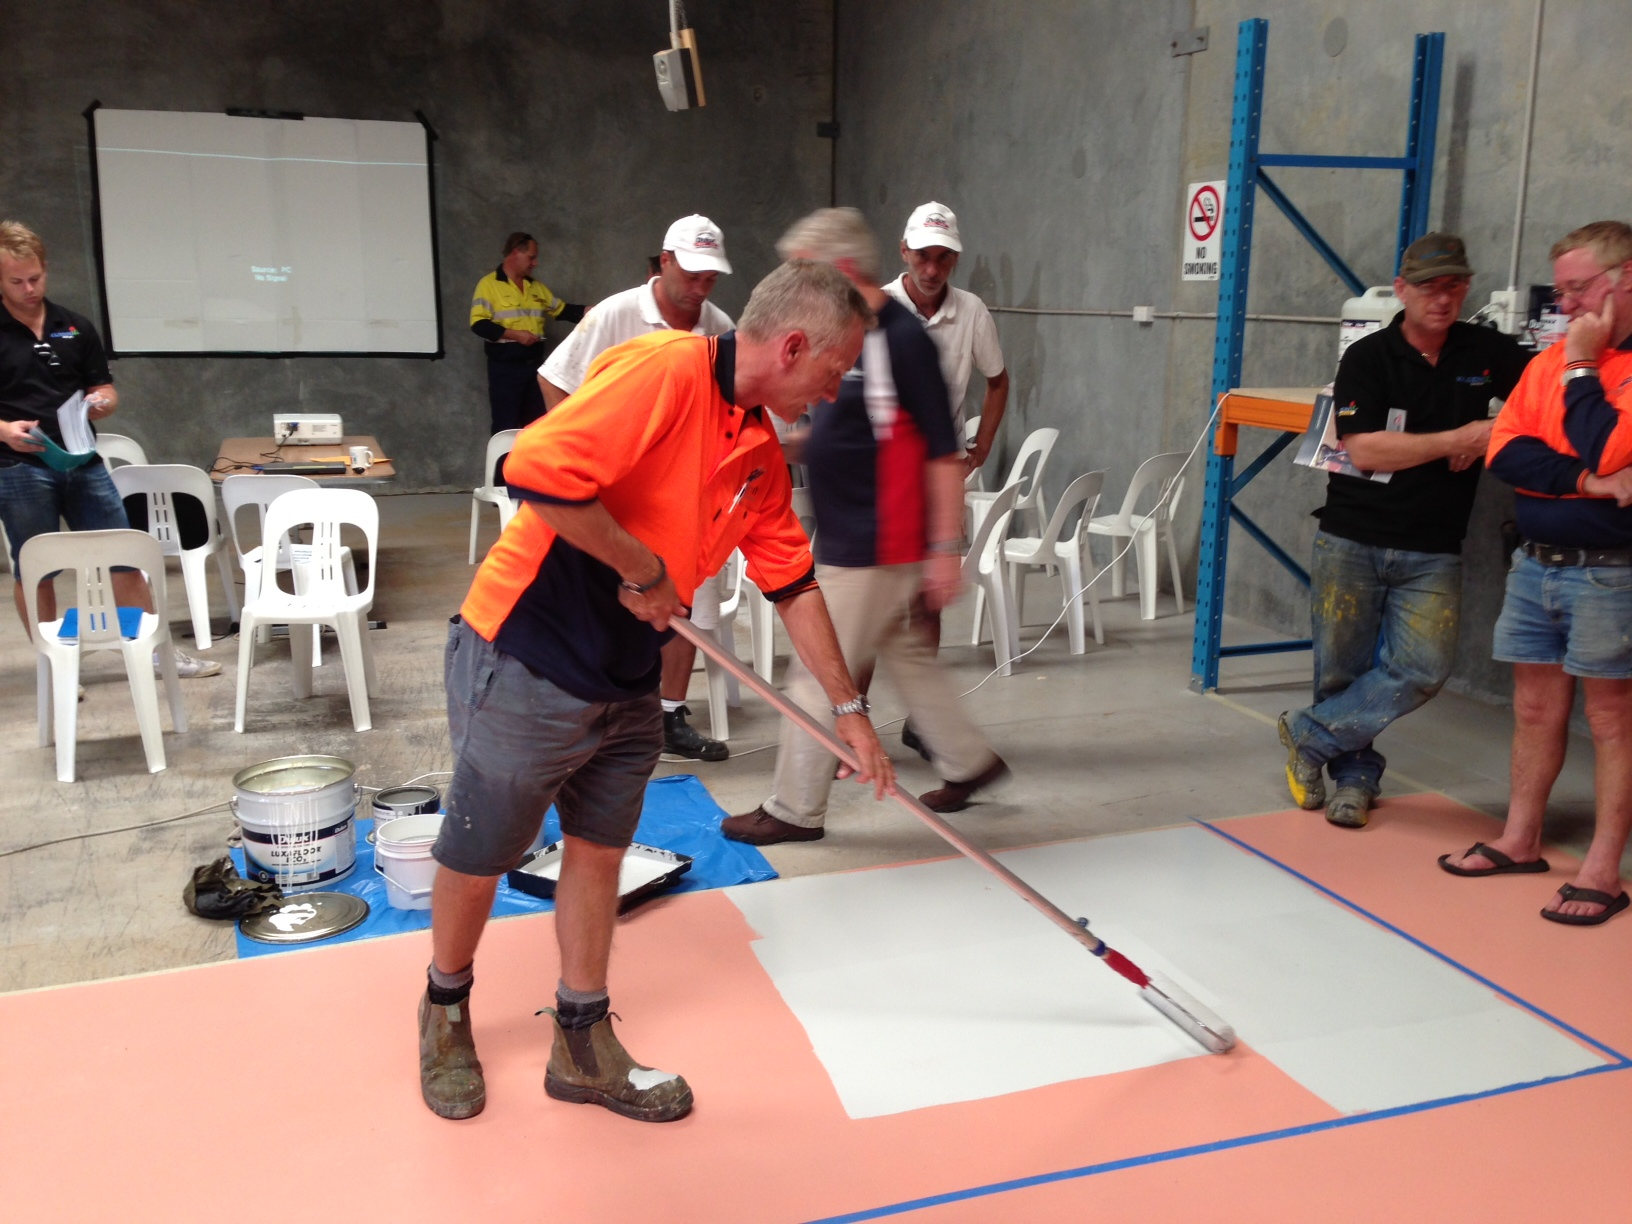 tradies-looking-to-become-a-business-owner-full-training-provided-4